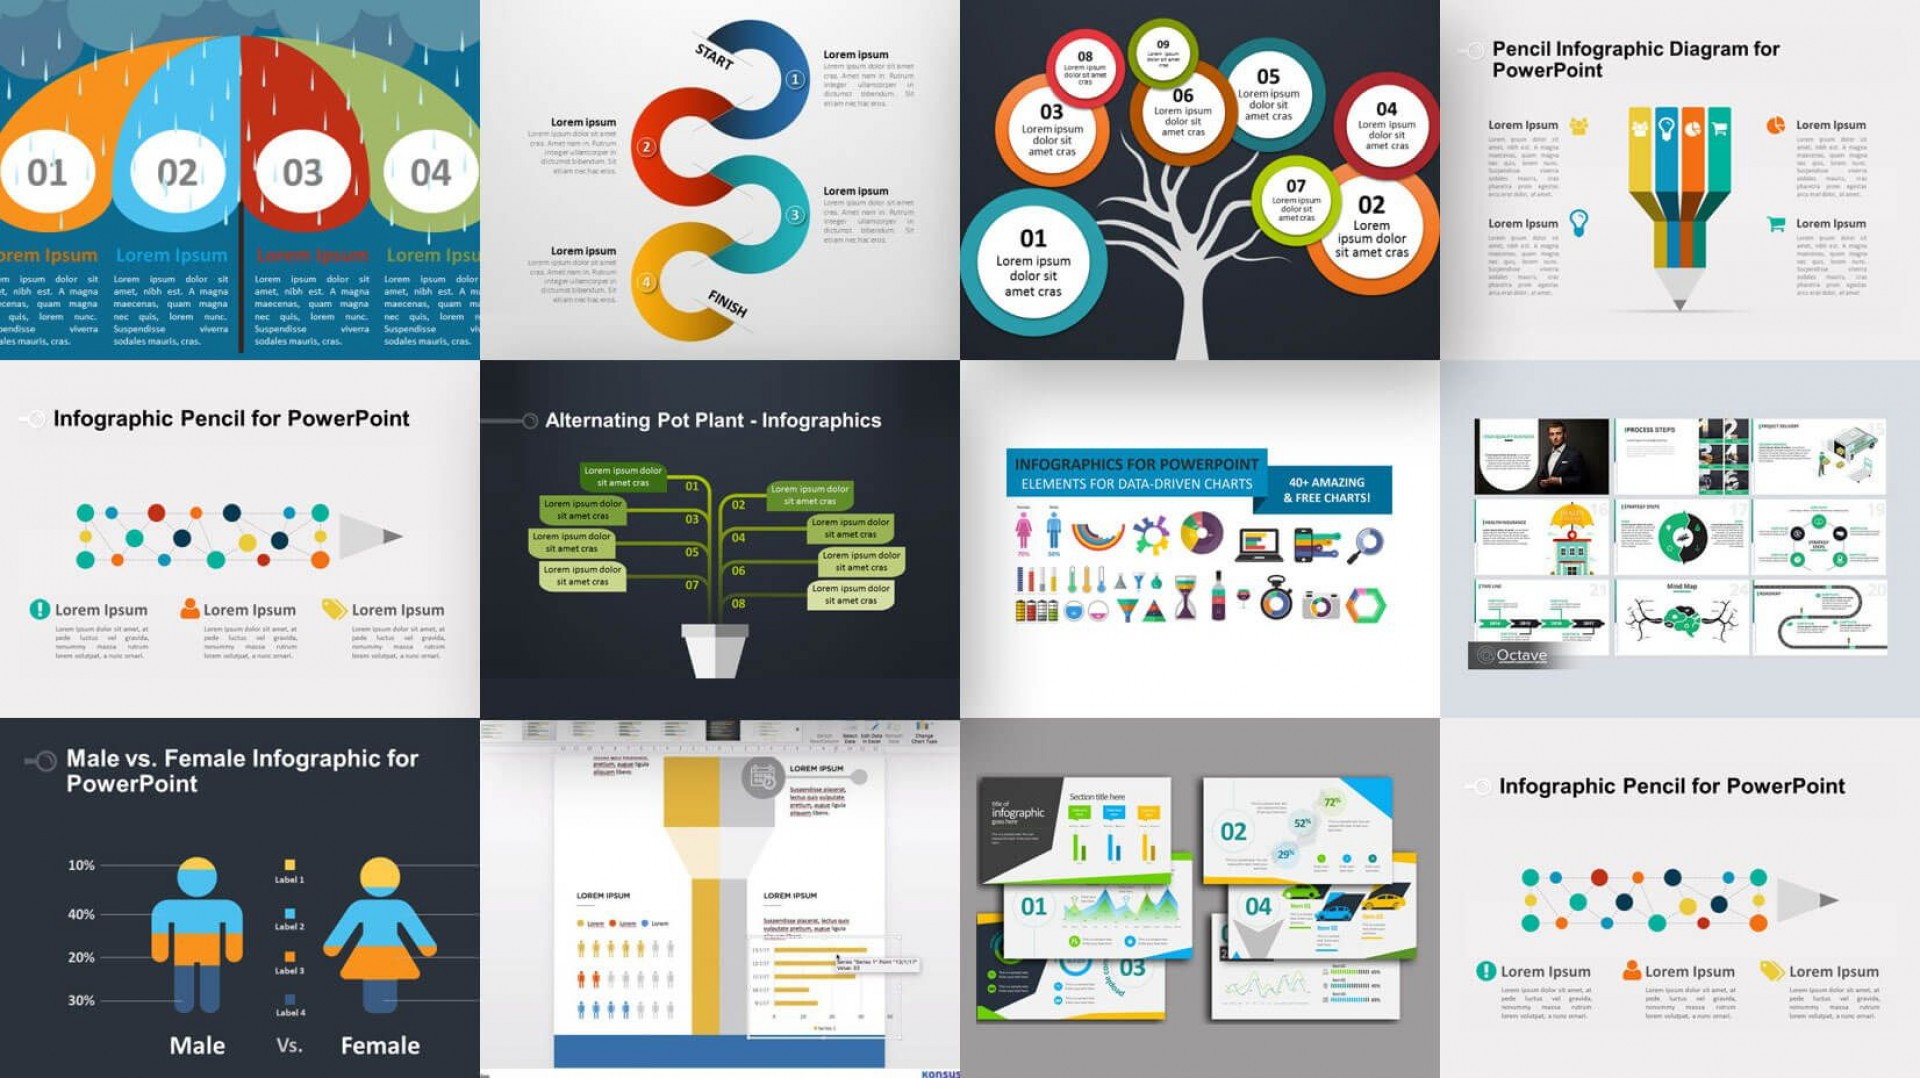 002 Staggering Power Point Presentation Template Free High Resolution  Powerpoint Layout Download 2019 Modern Busines1920